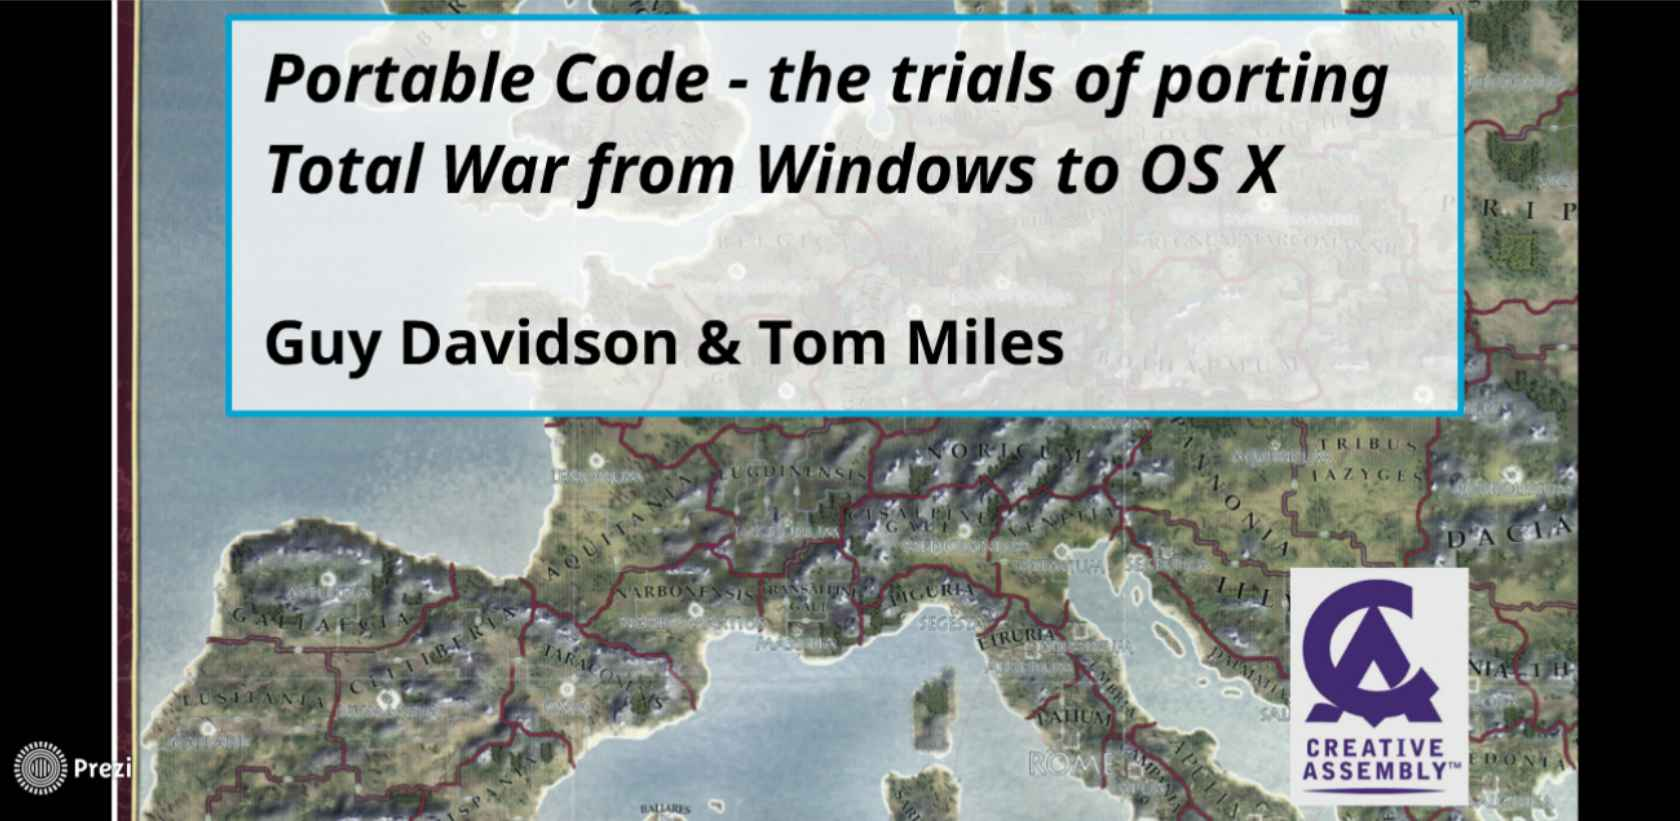 Portable Code - The Trials of Porting Total War from Windows